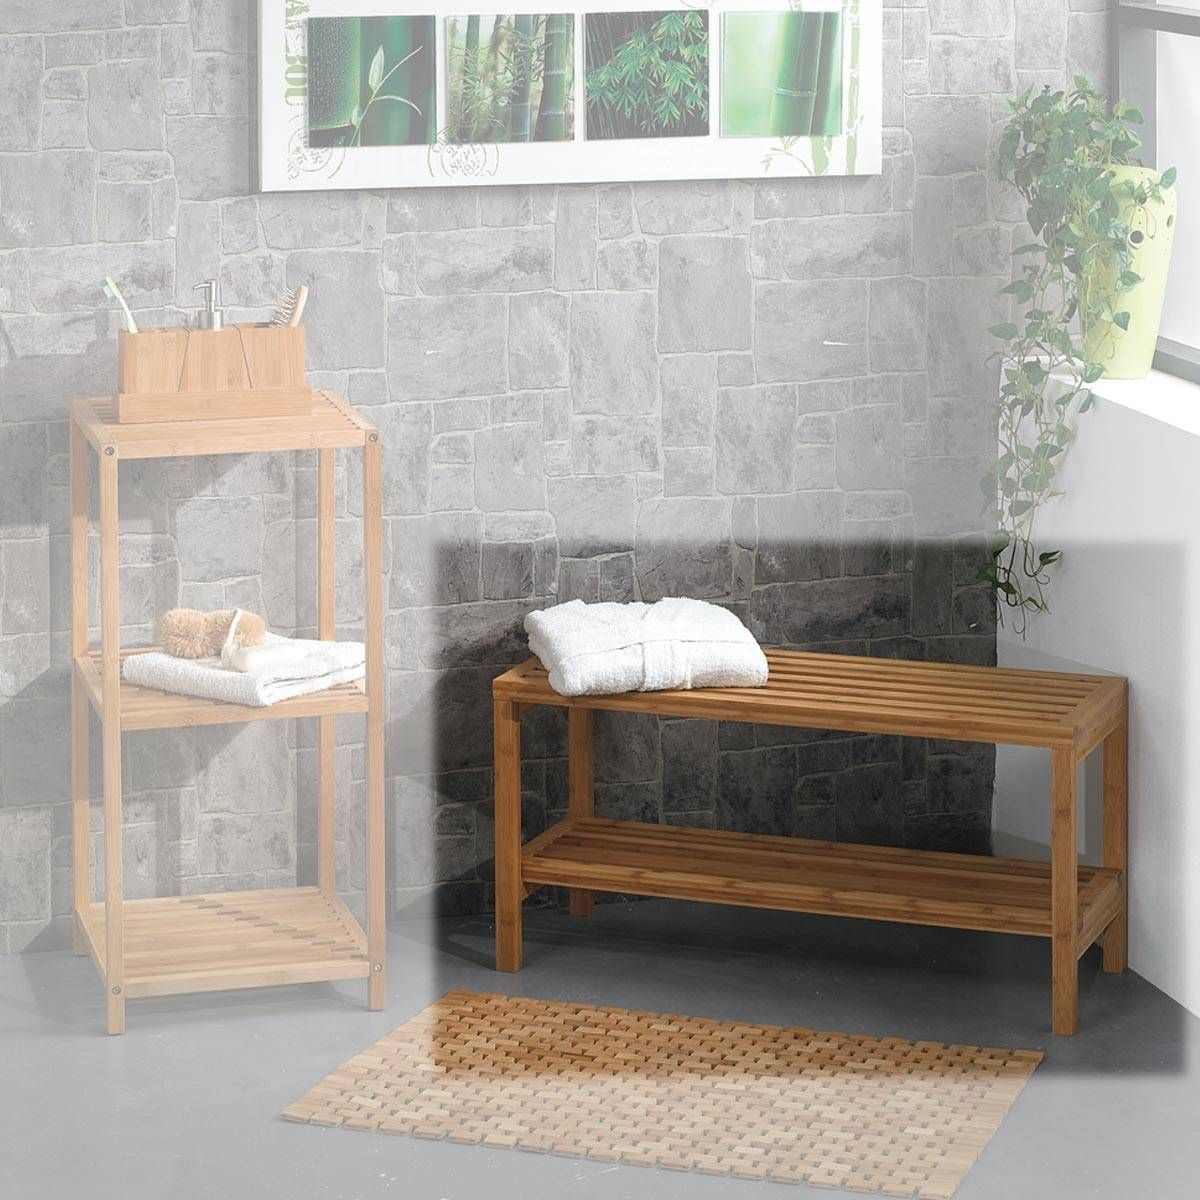 Banc Bambou 2 Niveaux | Wish list for the house | Pinterest ...